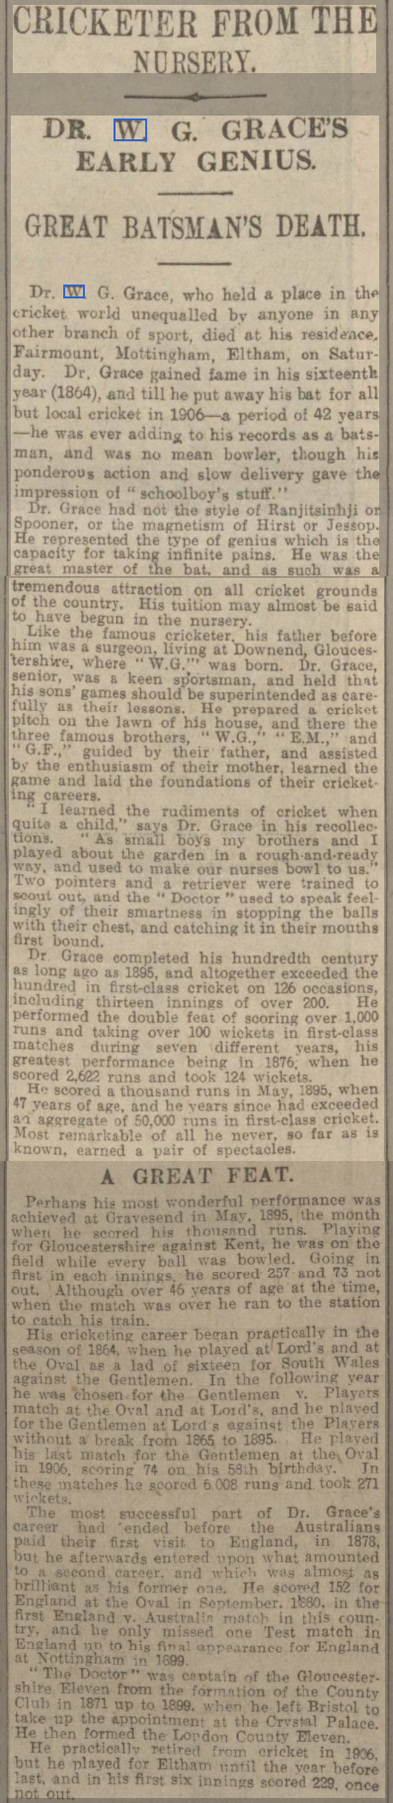 newspaper report on the death of WG Grace